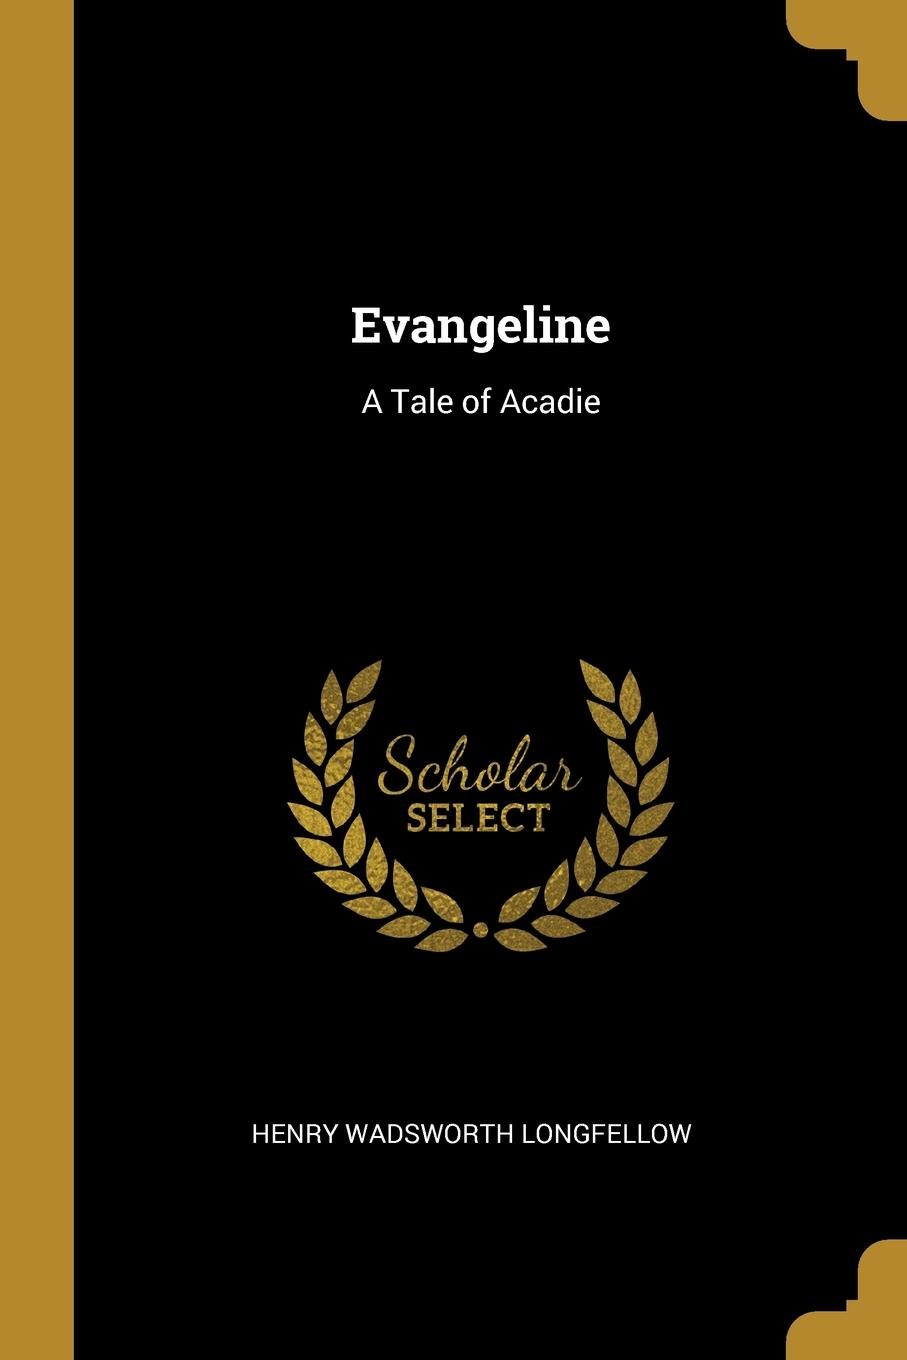 Henry Wadsworth Longfellow. Evangeline. A Tale of Acadie